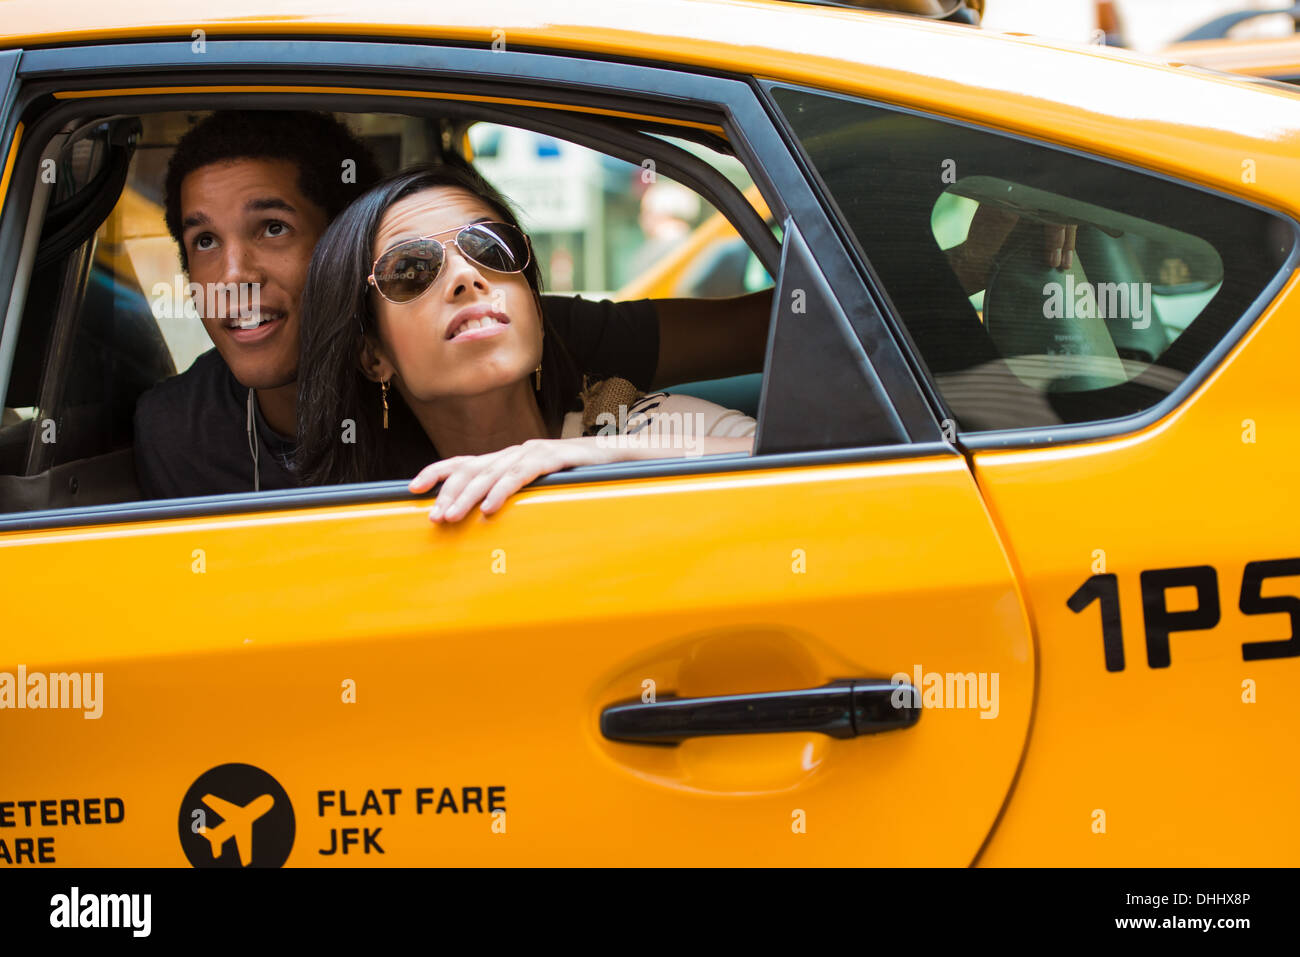 Couple looking up from cab window - Stock Image